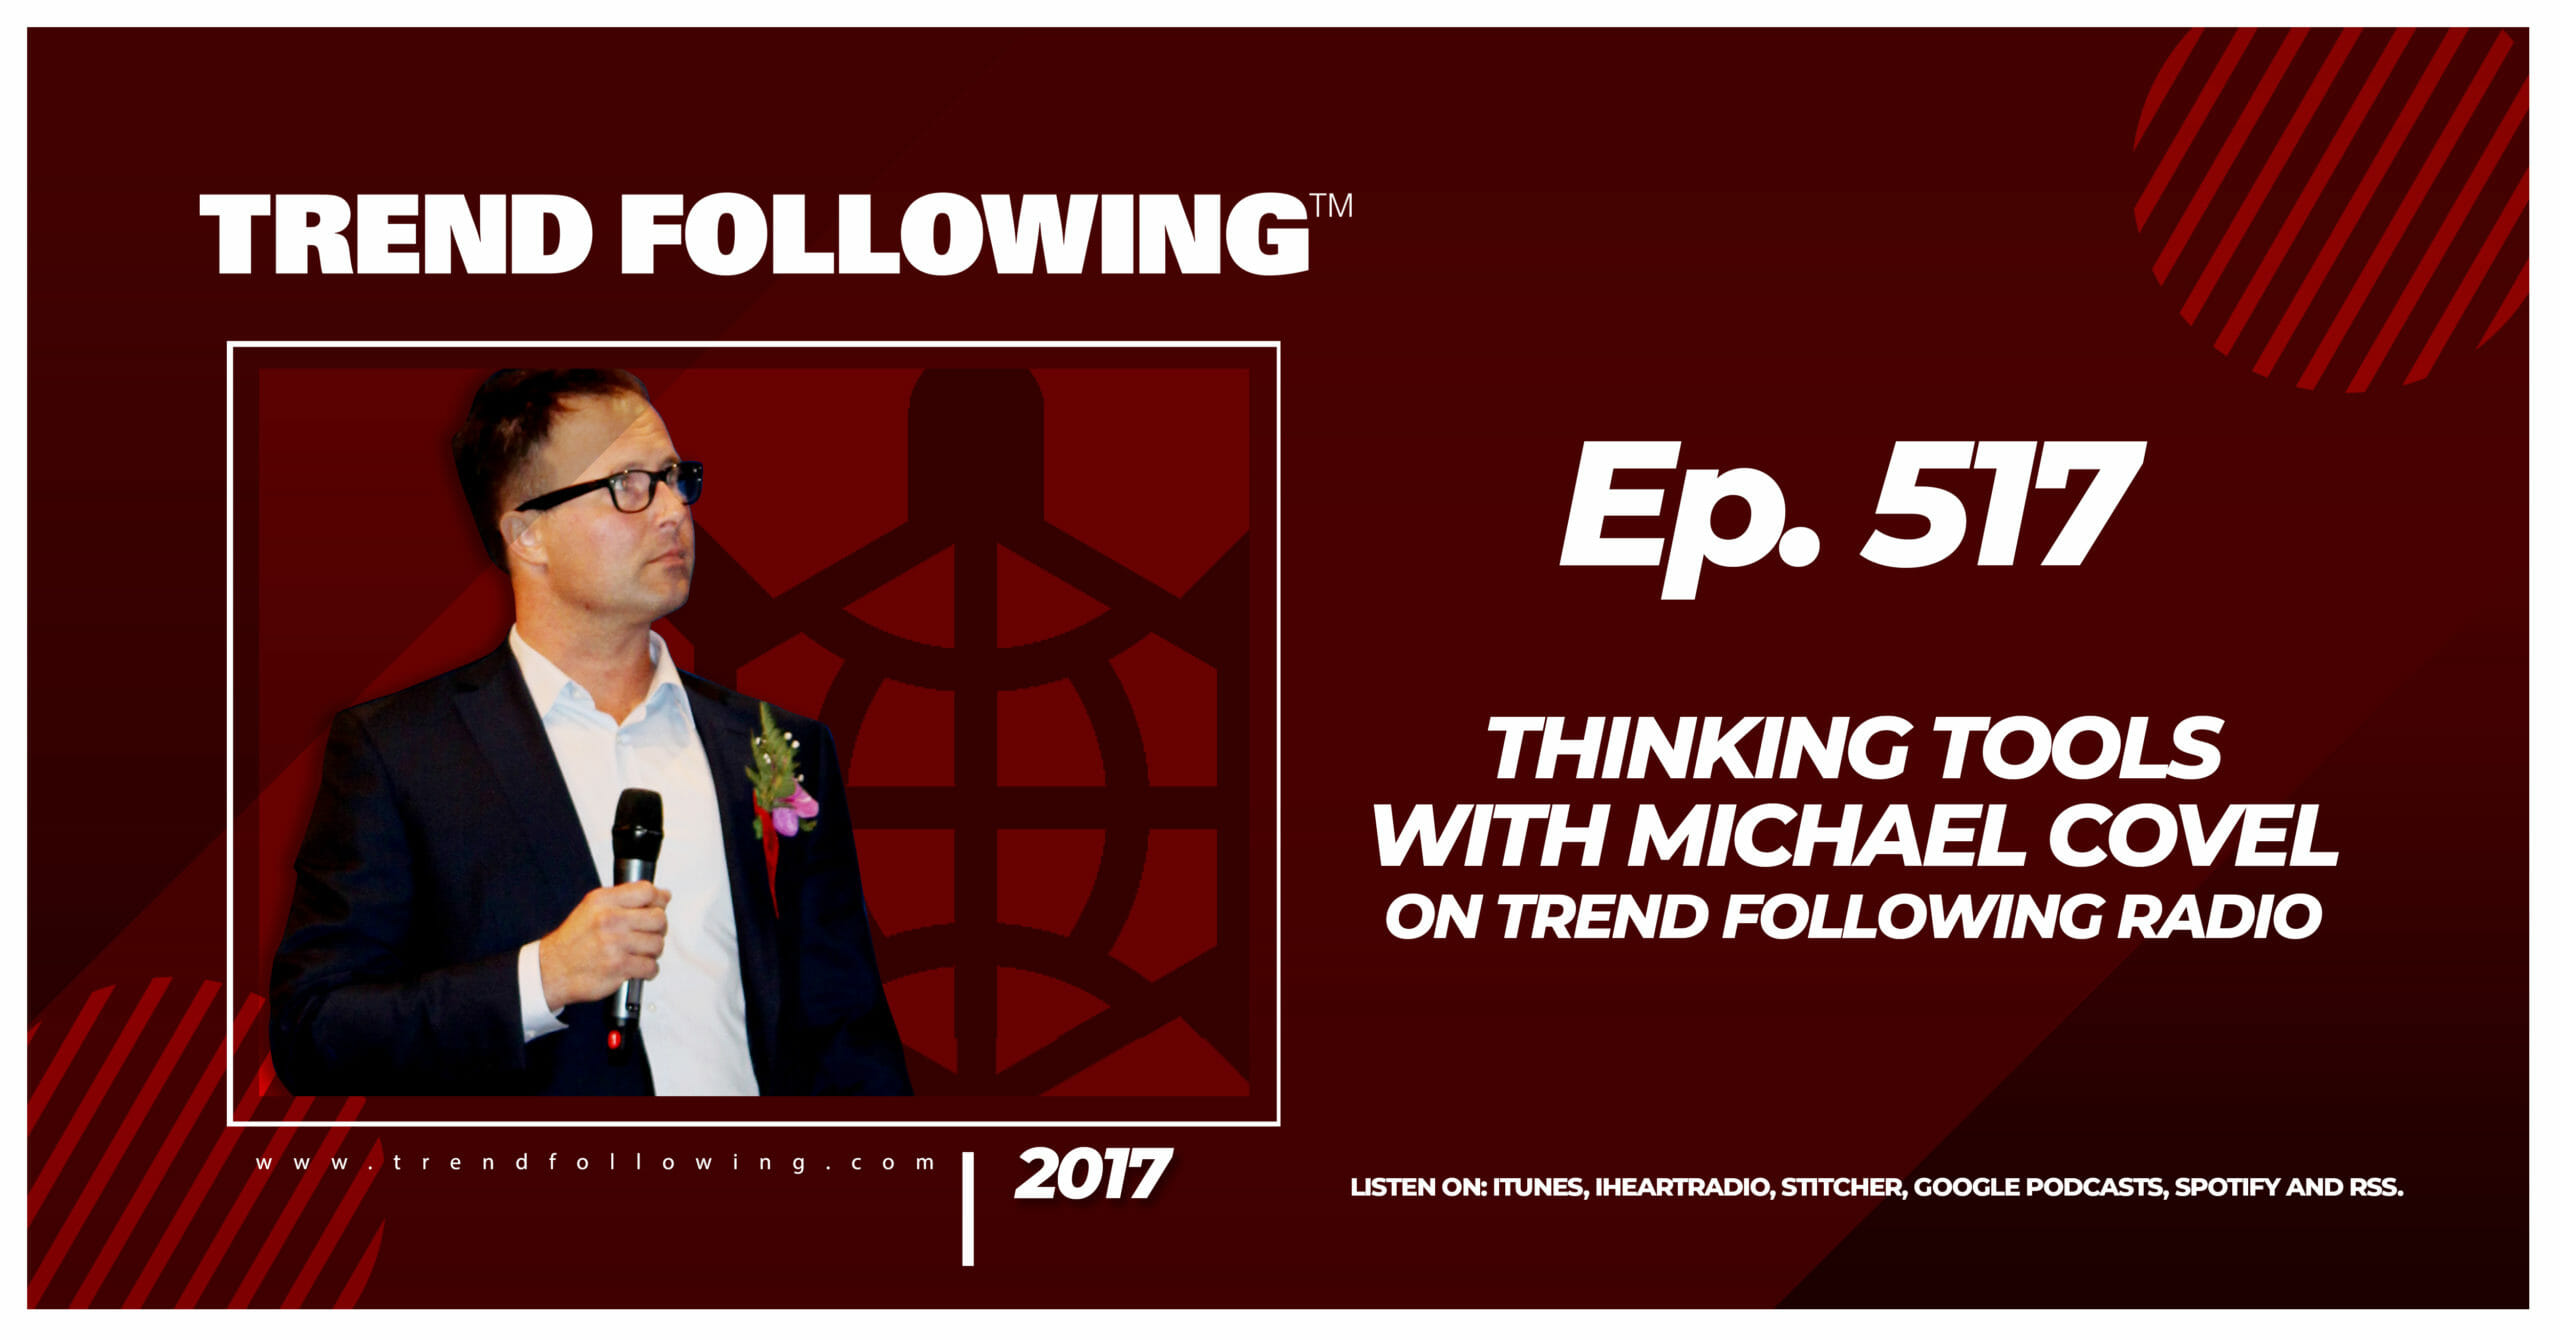 Thinking Tools with Michael Covel on Trend Following Radio